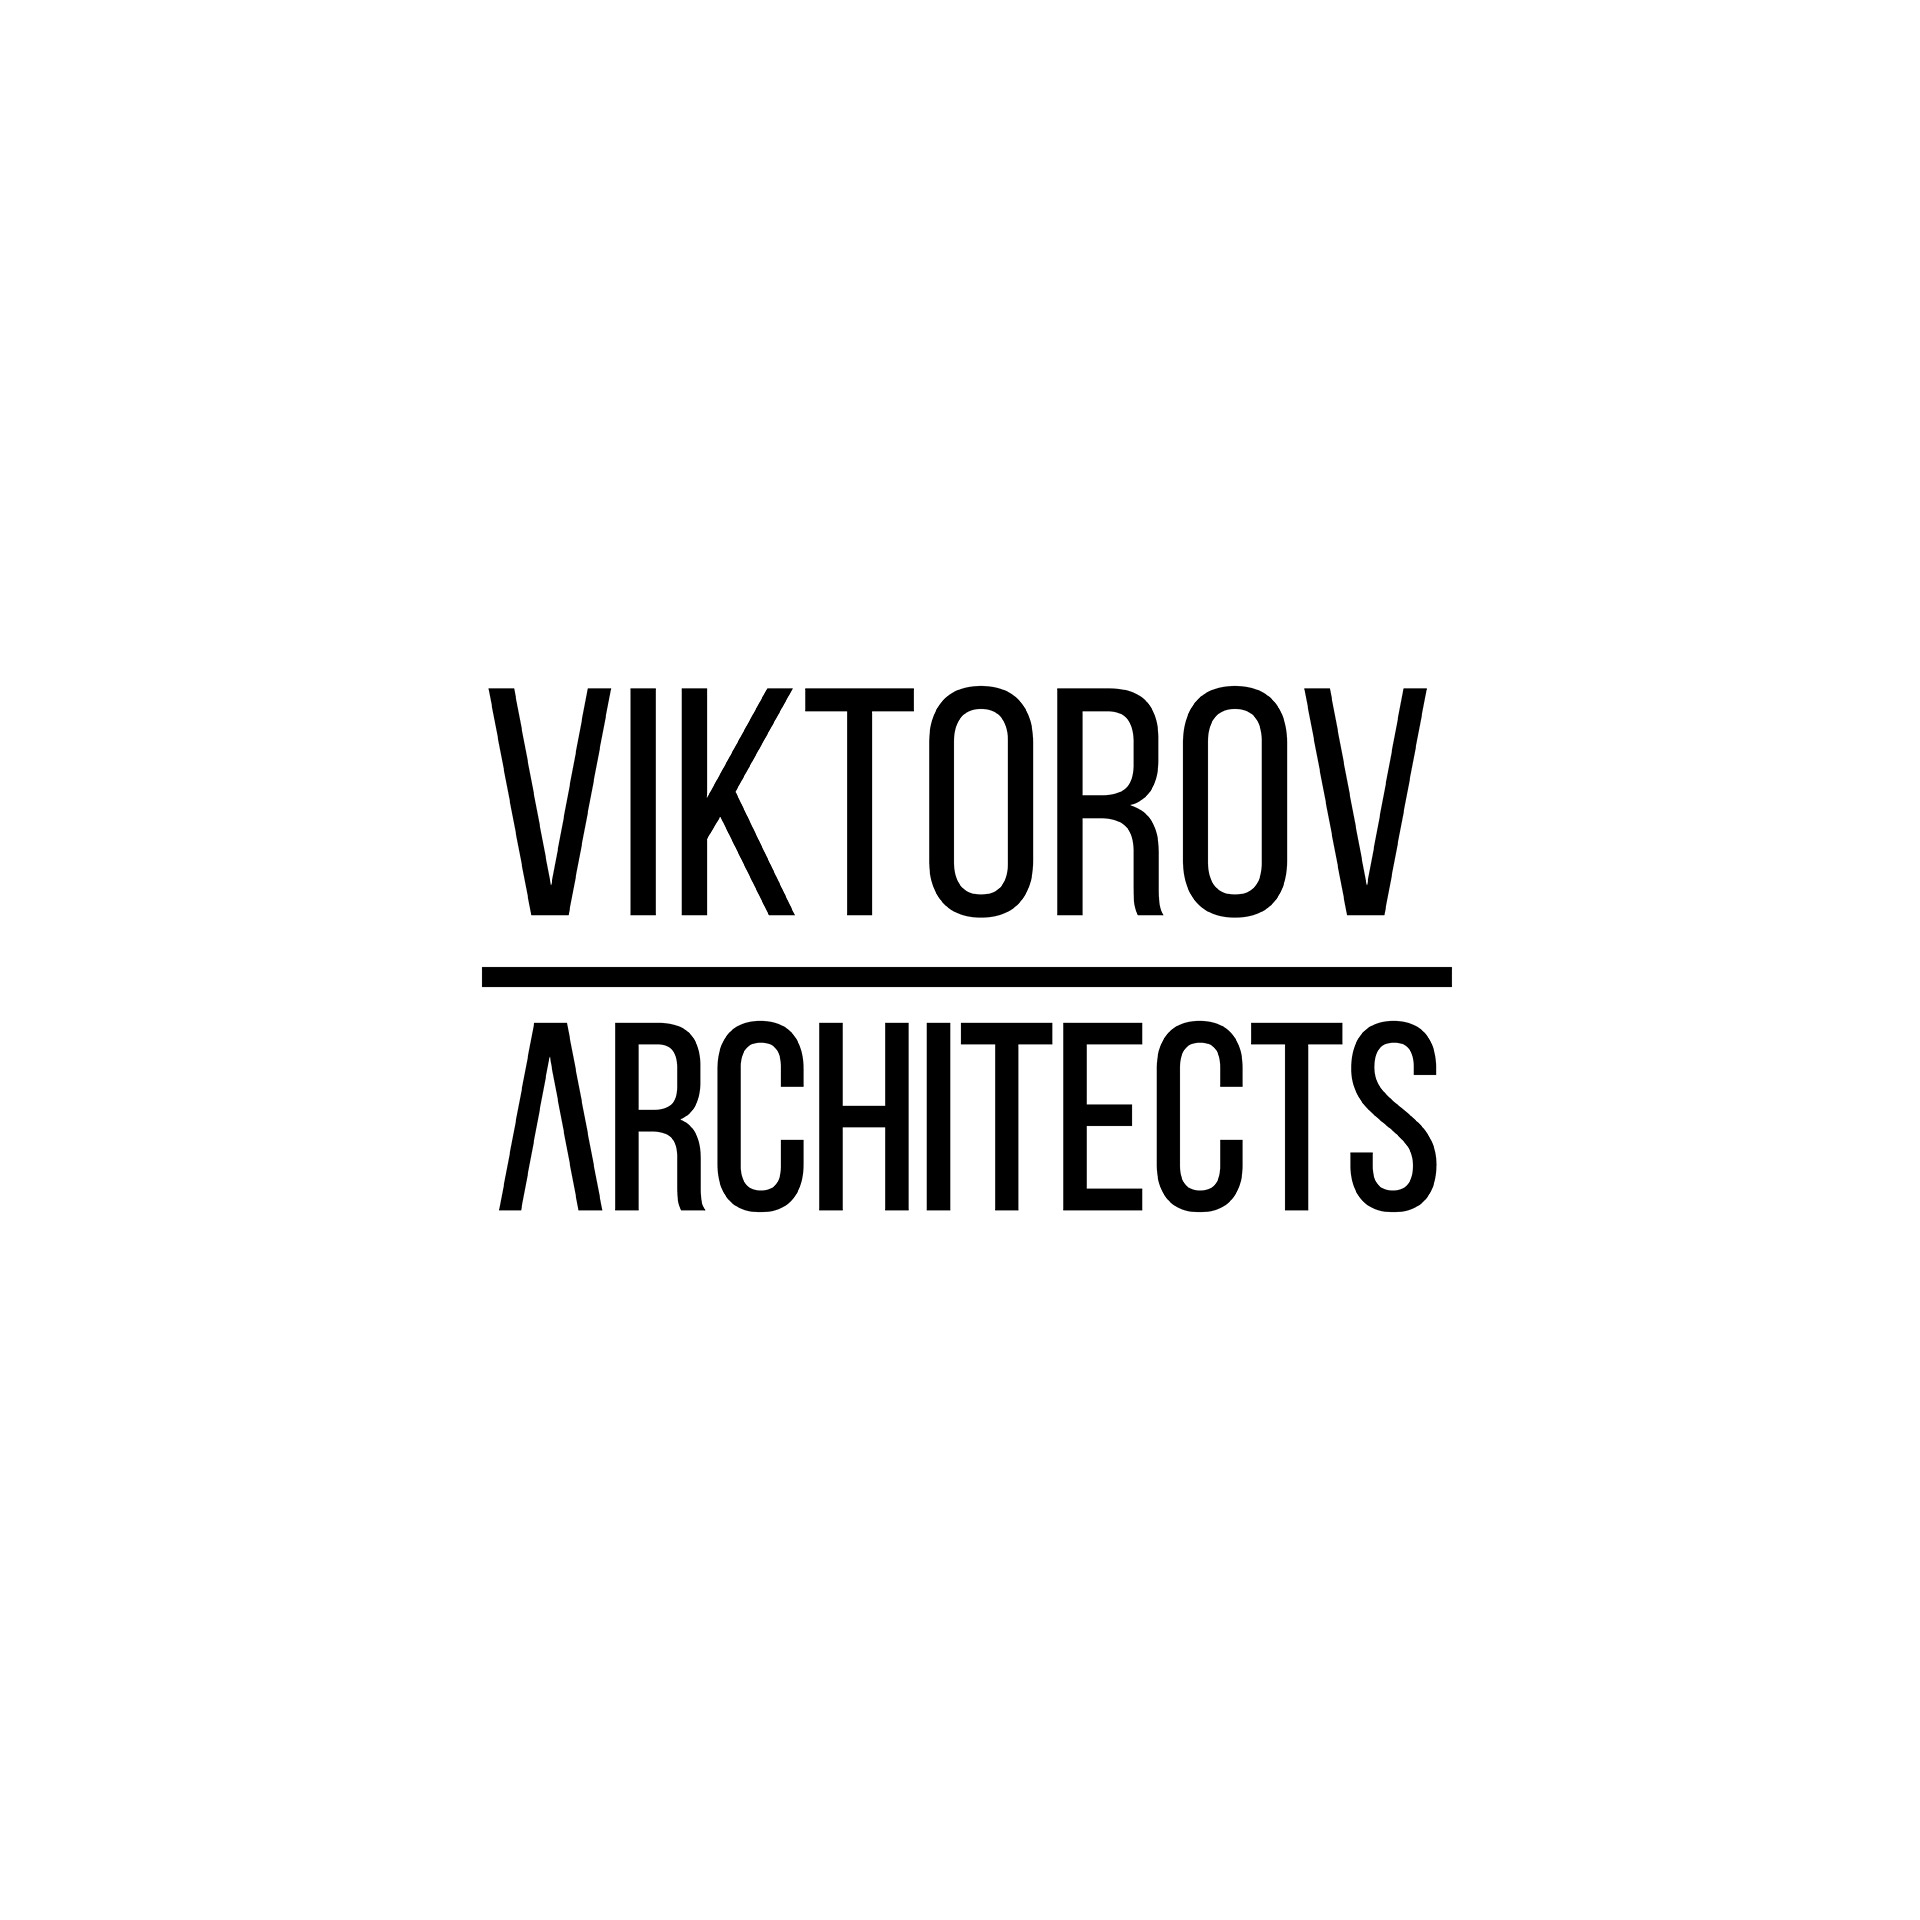 Viktorov Architects